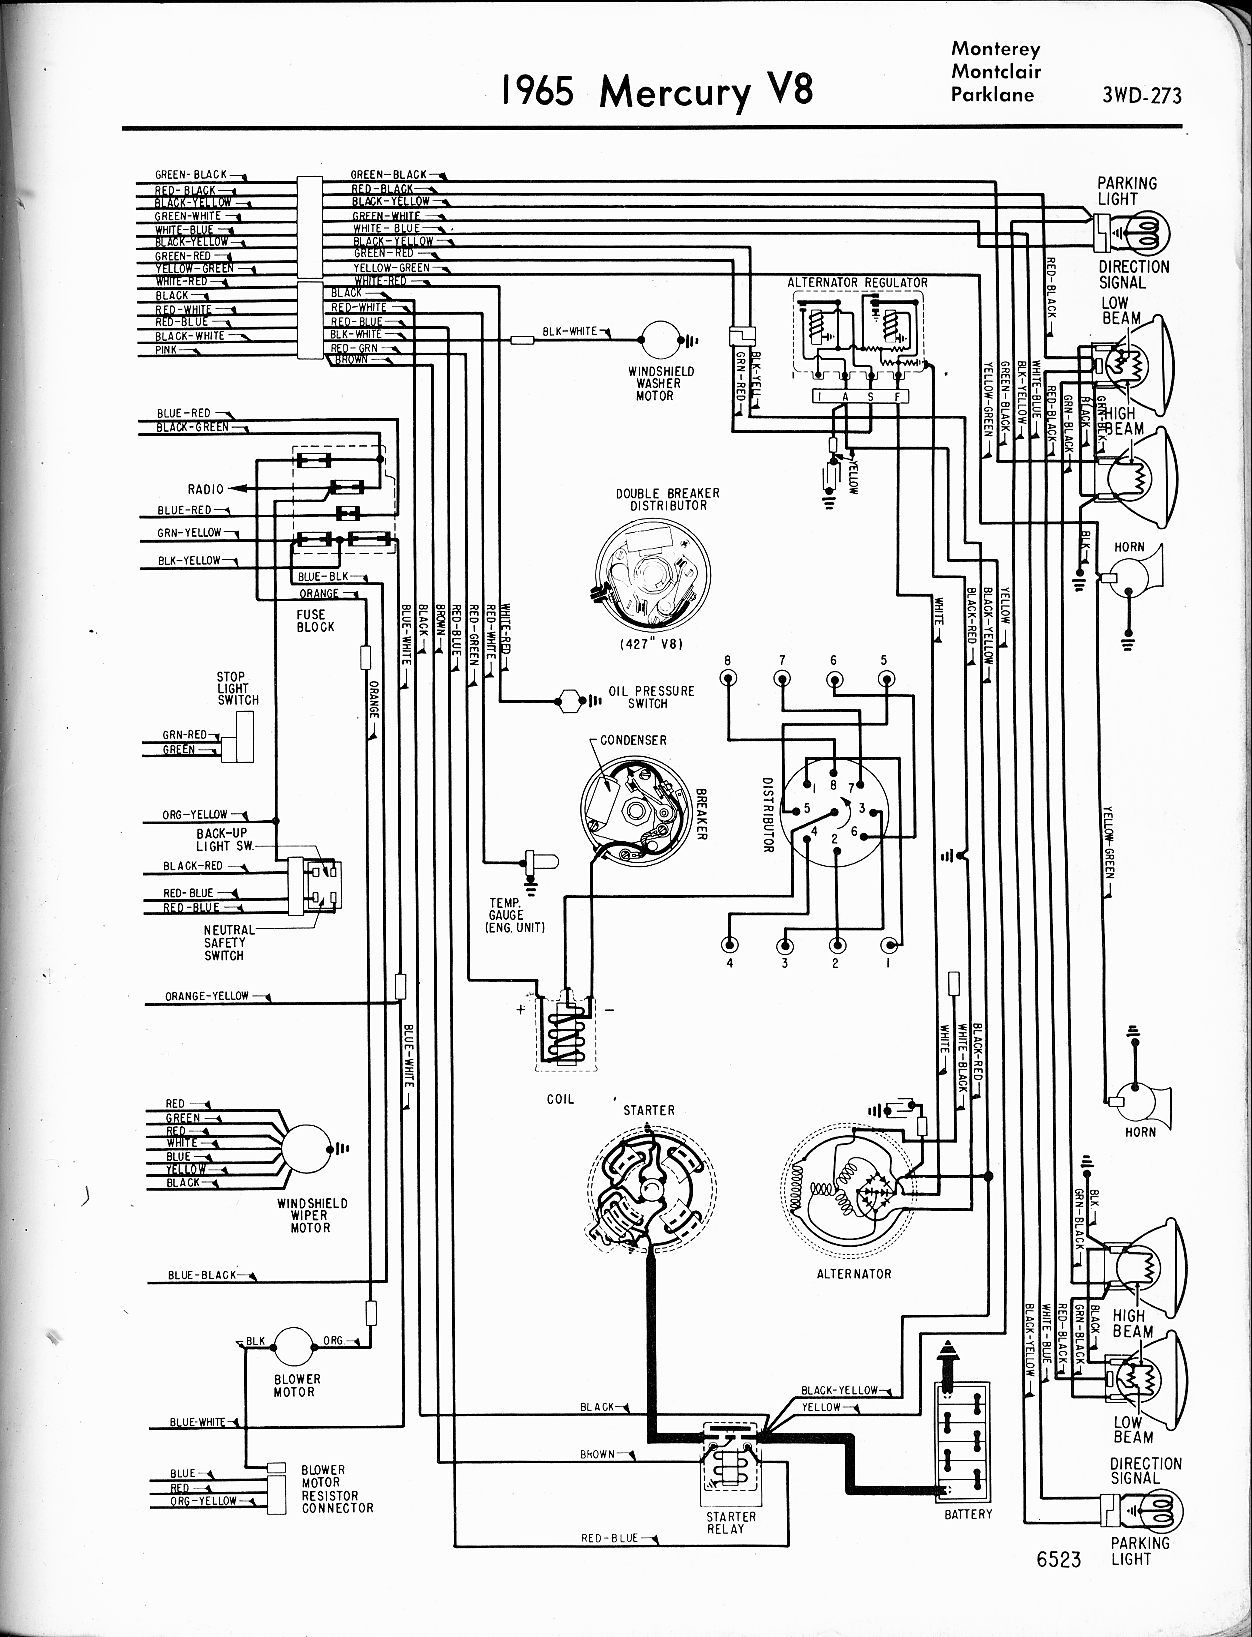 I Have A 68 Mercury Cougar And Need To Find A Wire Diagram For The Coil Water Temp And Charging